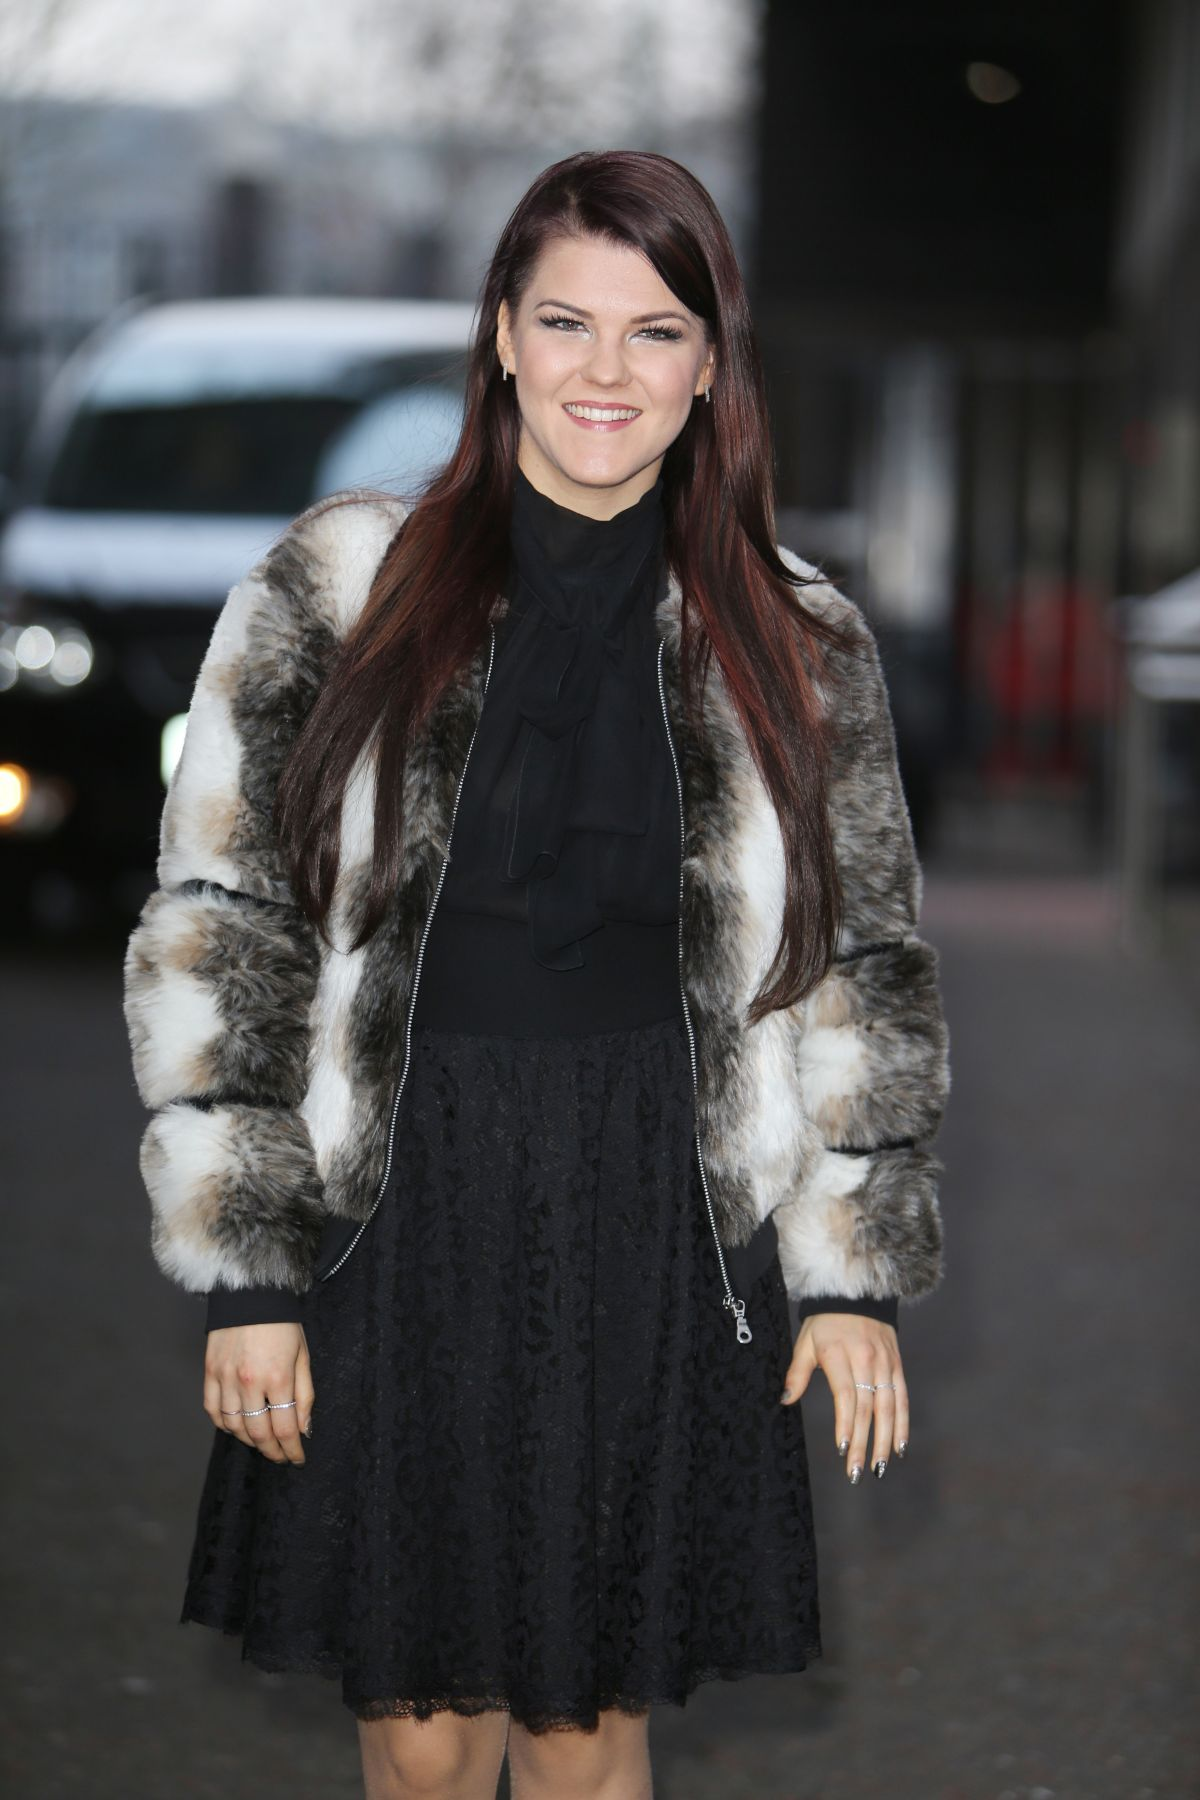 SAARA AALTO at ITV Studios in London 02/15/2017